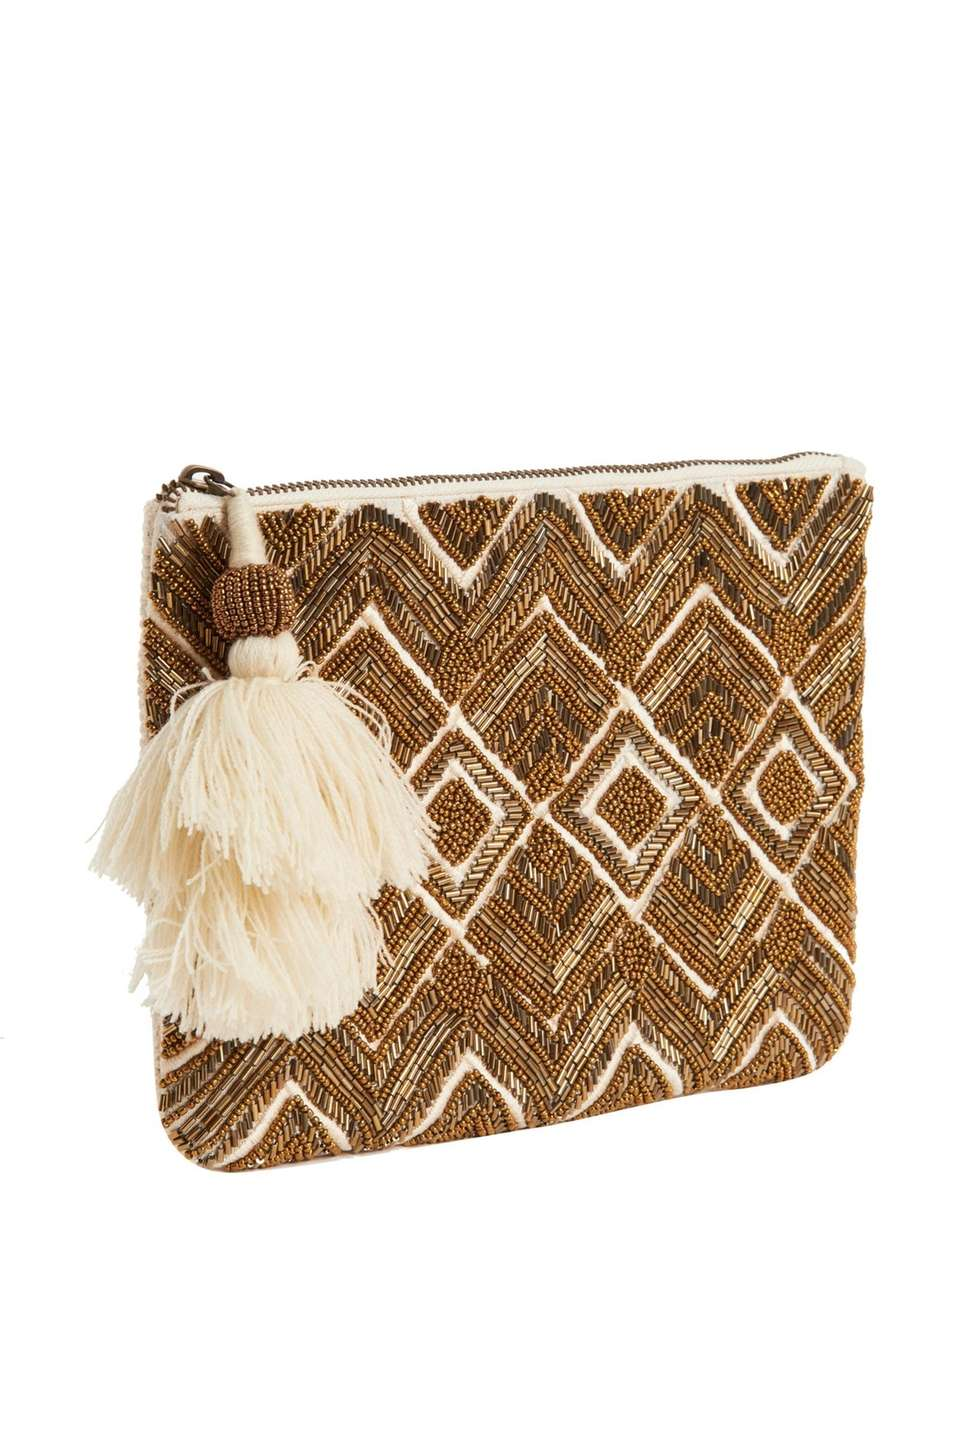 This Universal Thread clutch features intricate gold beading